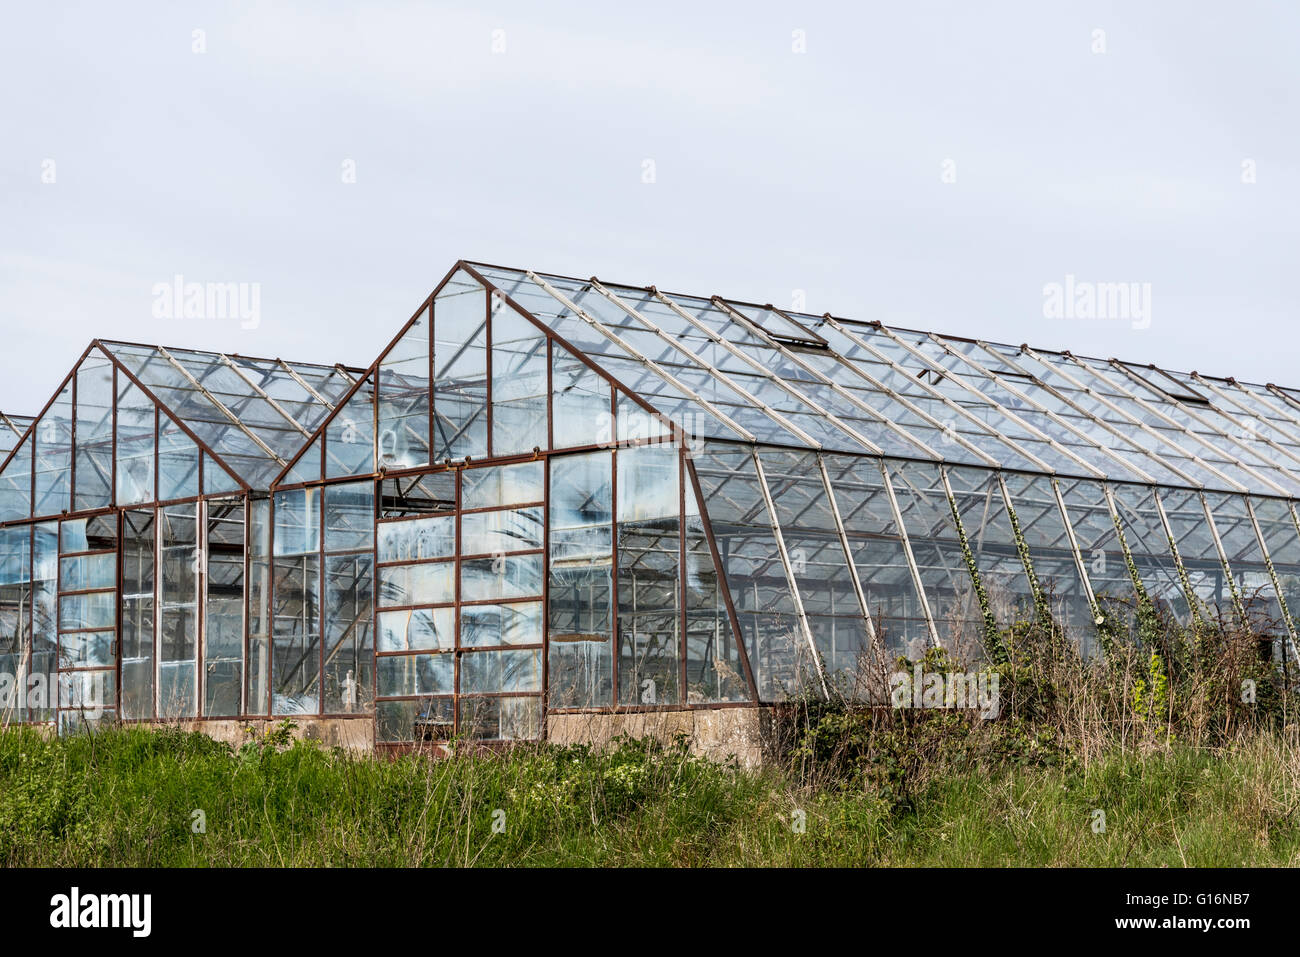 Disused glasshouses at Great Chesterford in Essex - Stock Image